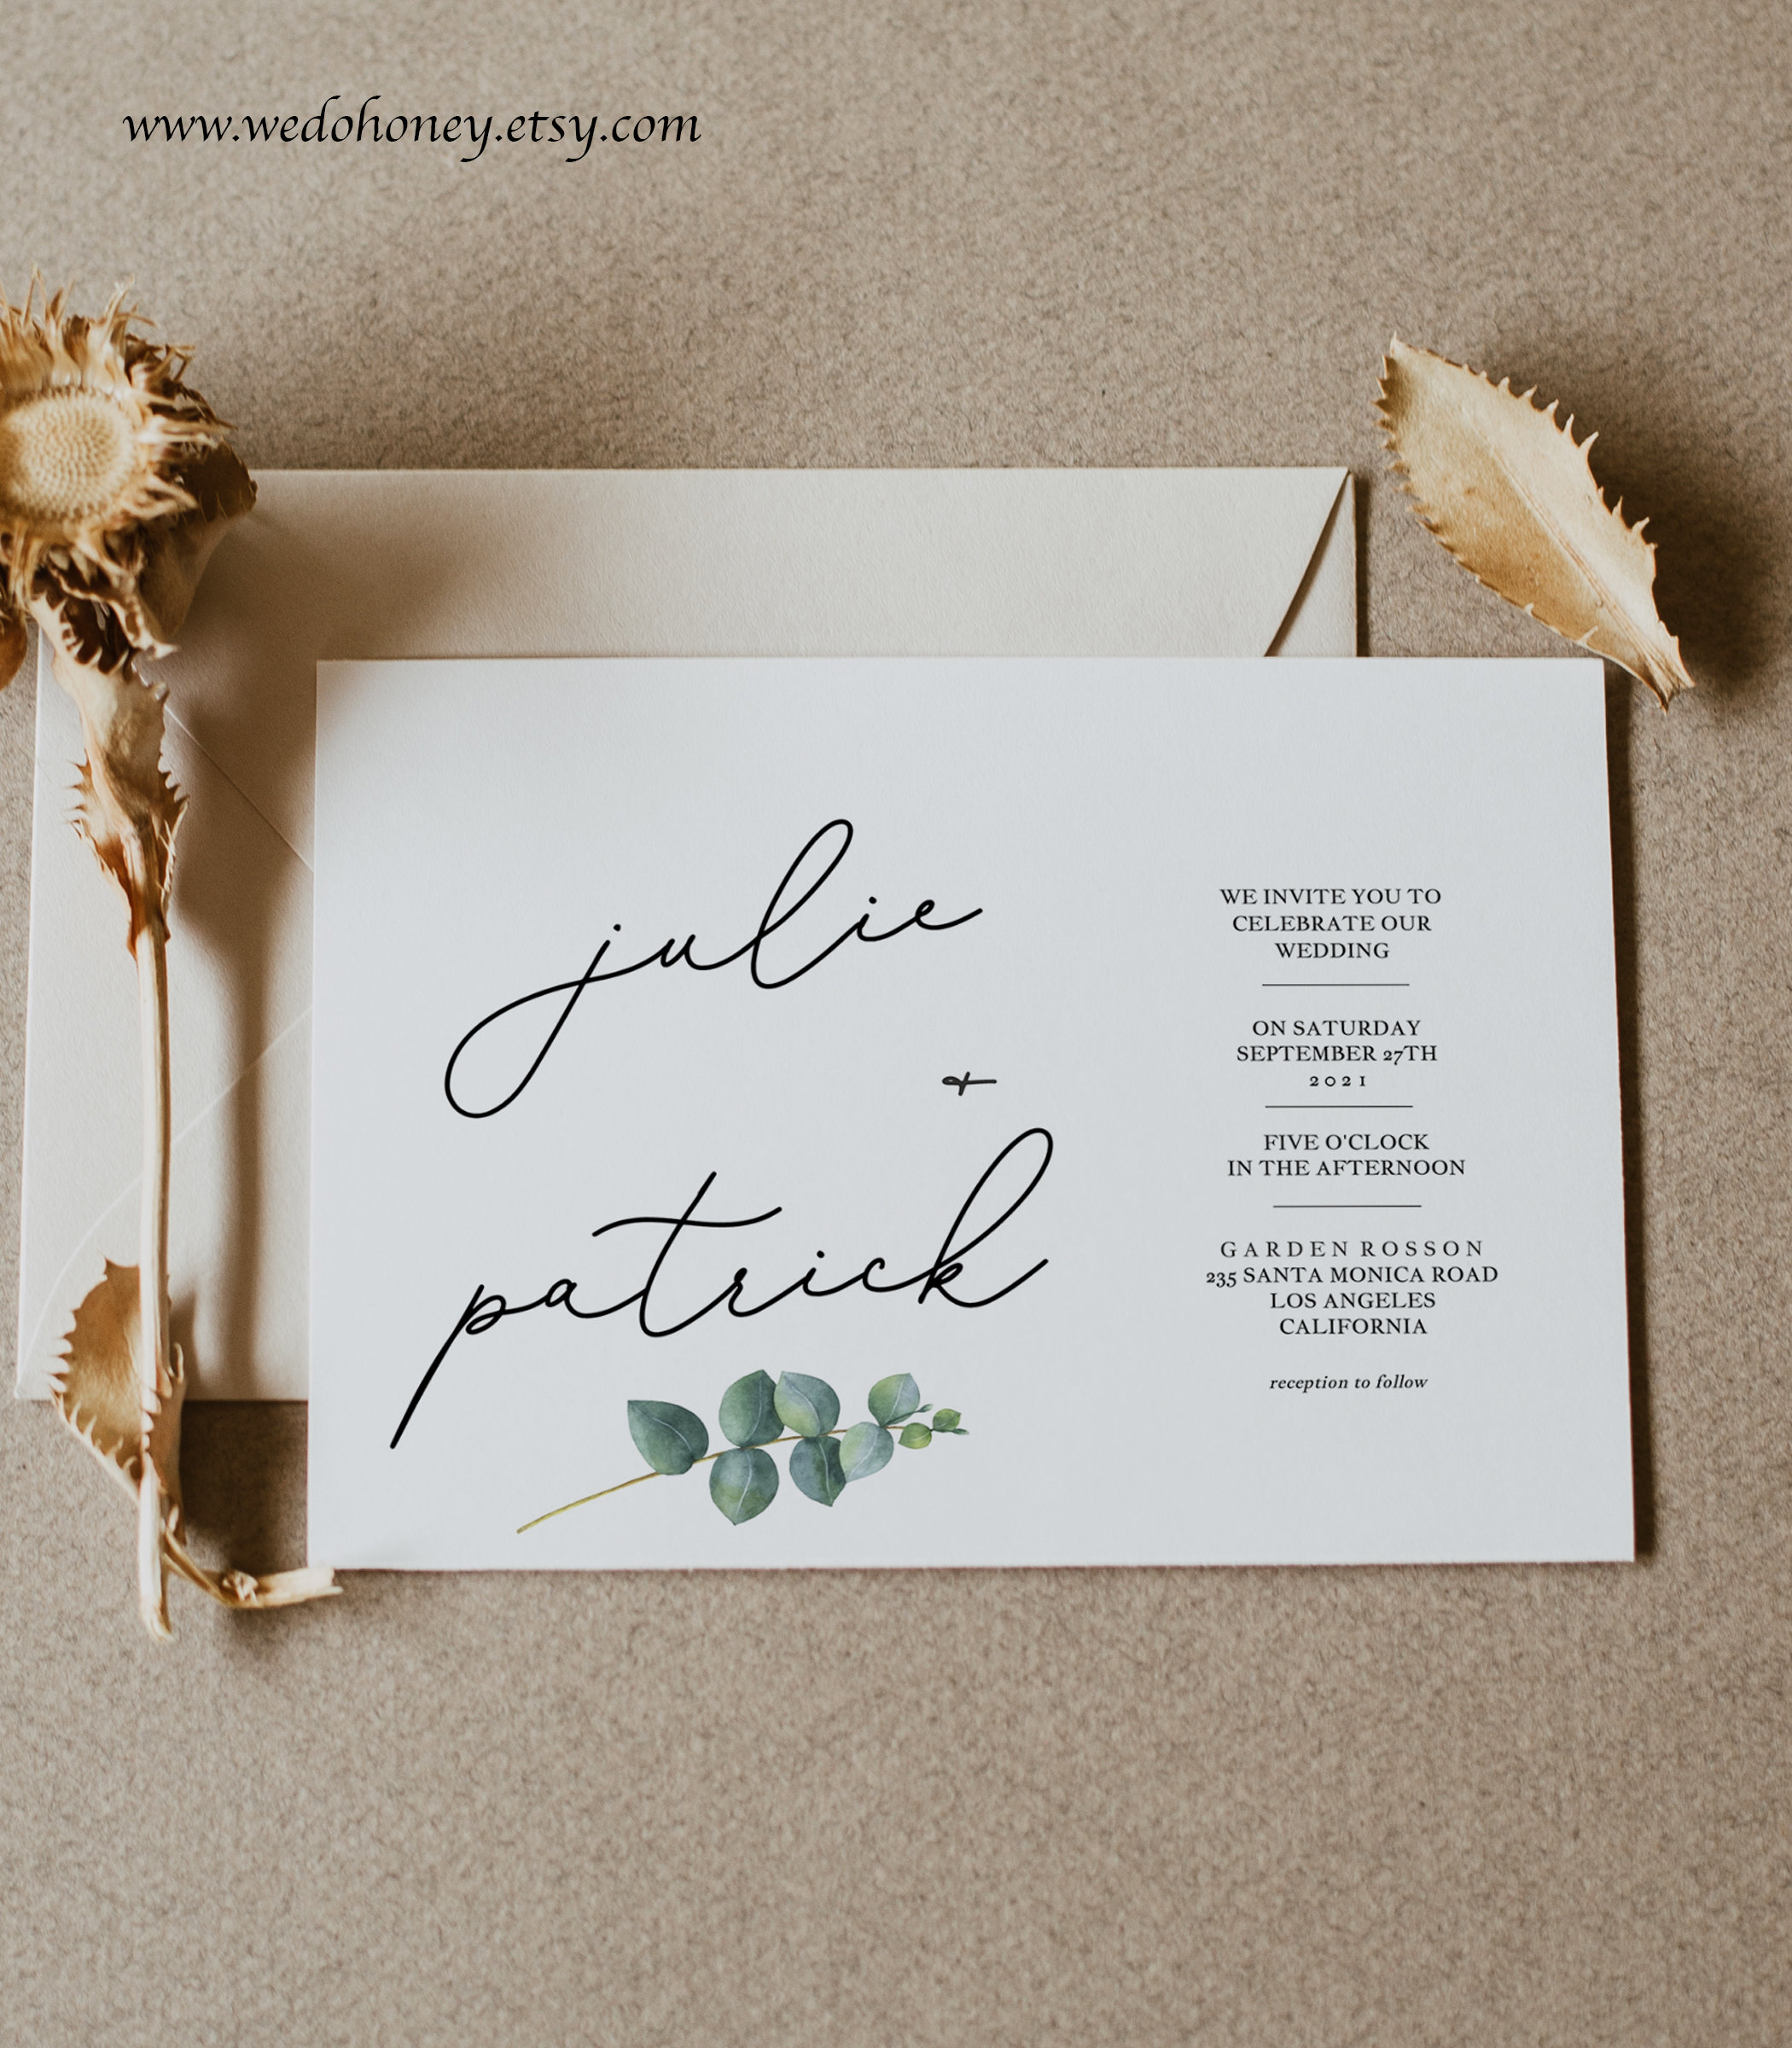 Eucalyptus Wedding Suite Invitation Template, Greenery Cards, Rustic and Modern, Editable Text with Corjl #079